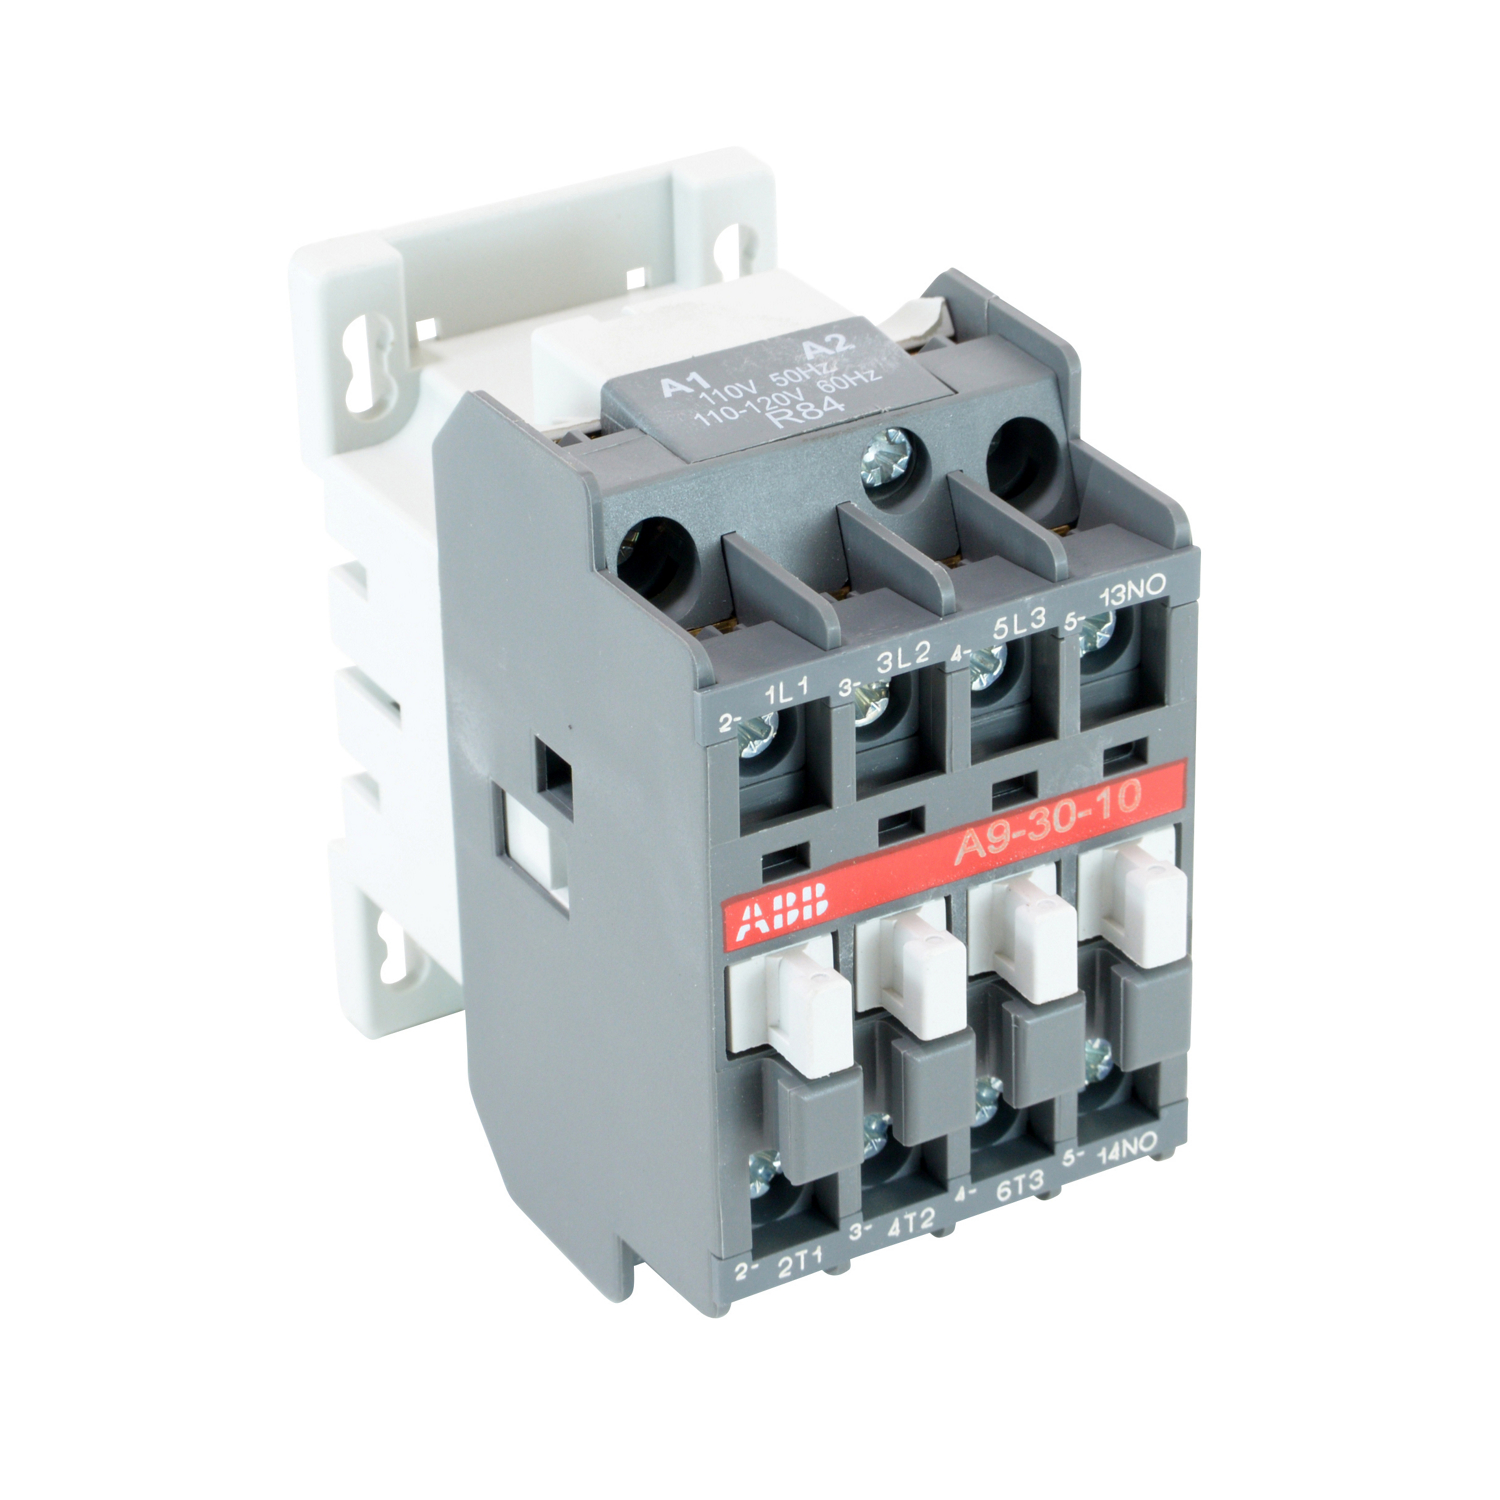 Industrial Control Motor Starter Controls Contactors Standard Nema 3 Phase Contactor Wiring Pole 9 Amp Non Reversing Across The Line With